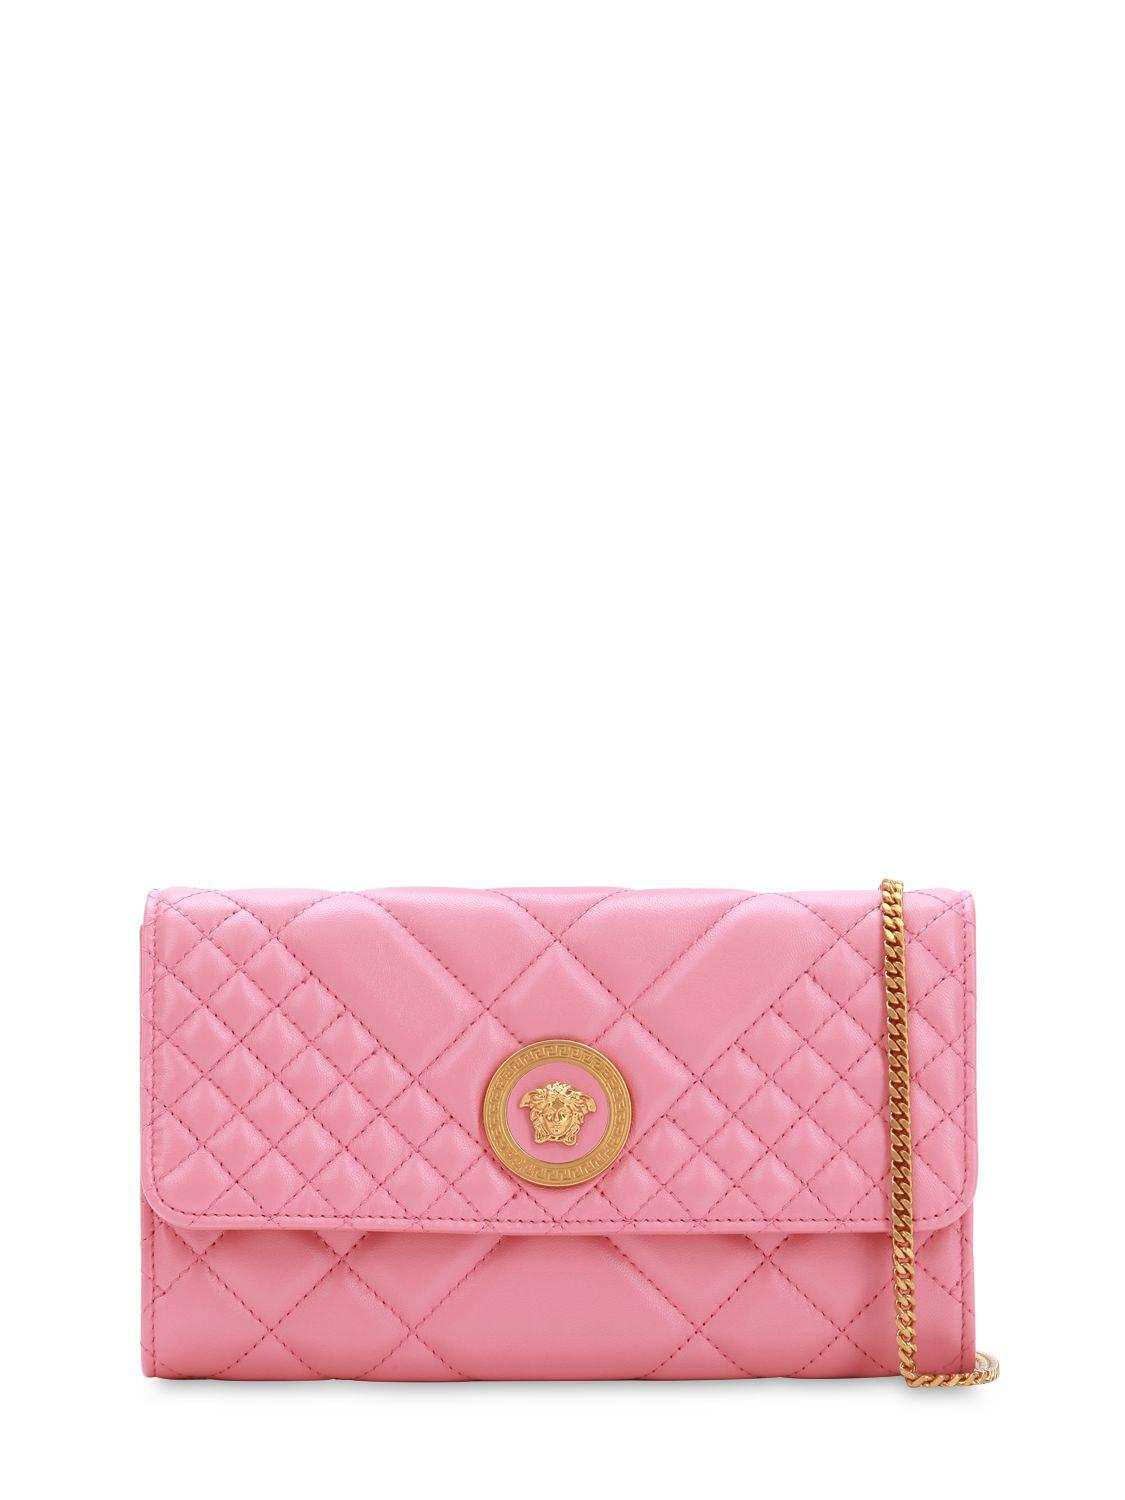 30cd38ca678 Lyst - Versace Icon Leather Shoulder Bag in Pink